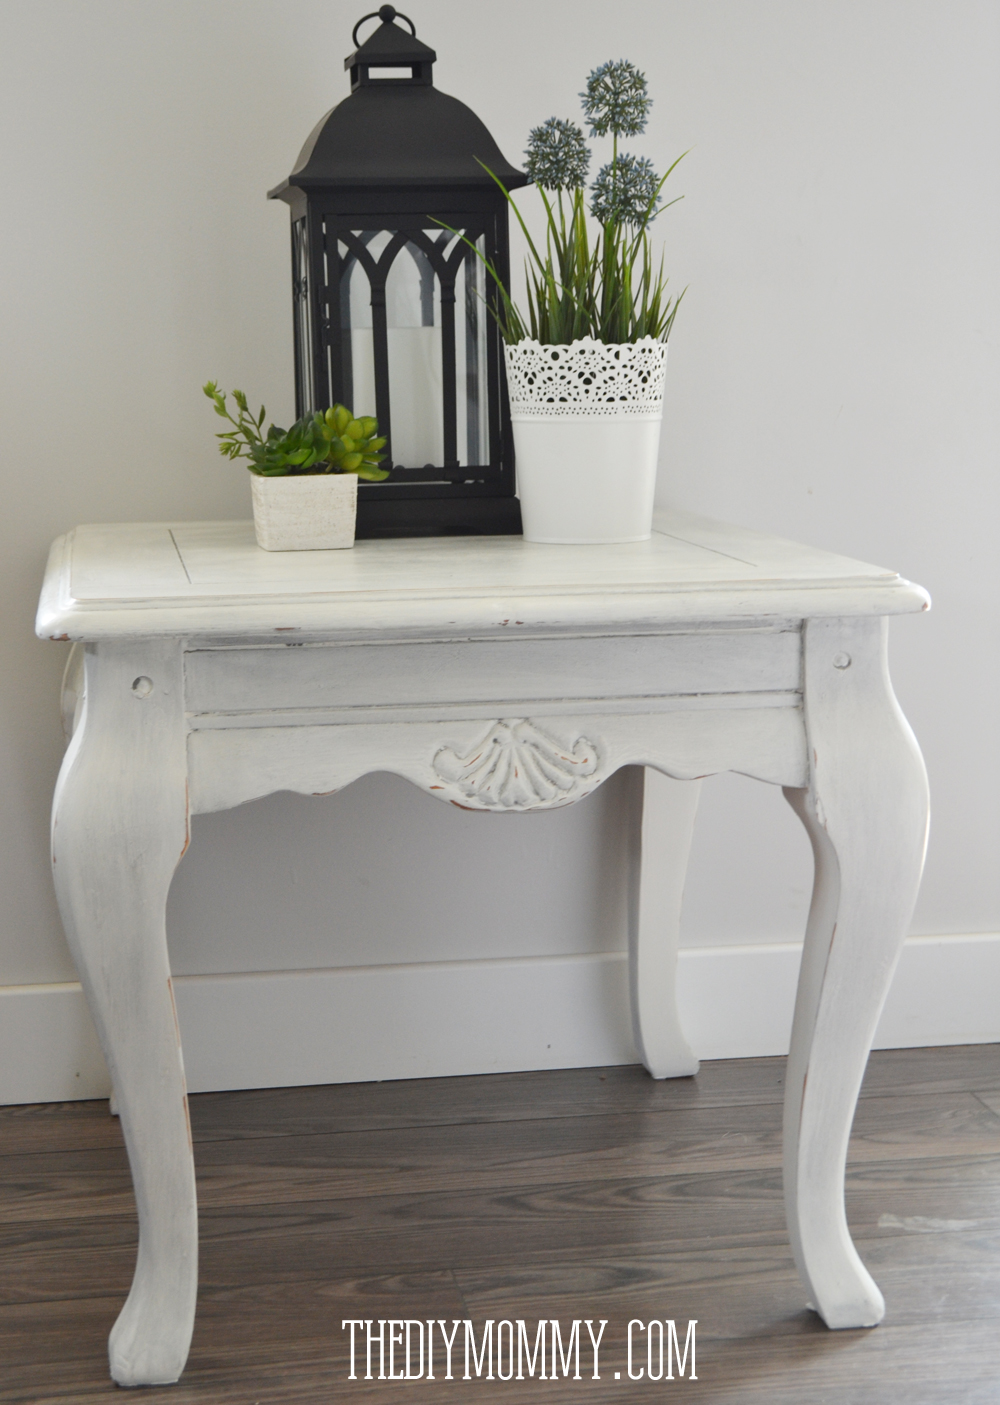 diy end tables that look stylish and unique chalk painted side table wood accent teak indoor rustic monarch grey modern furniture coffee homesense dining chairs outdoor battery